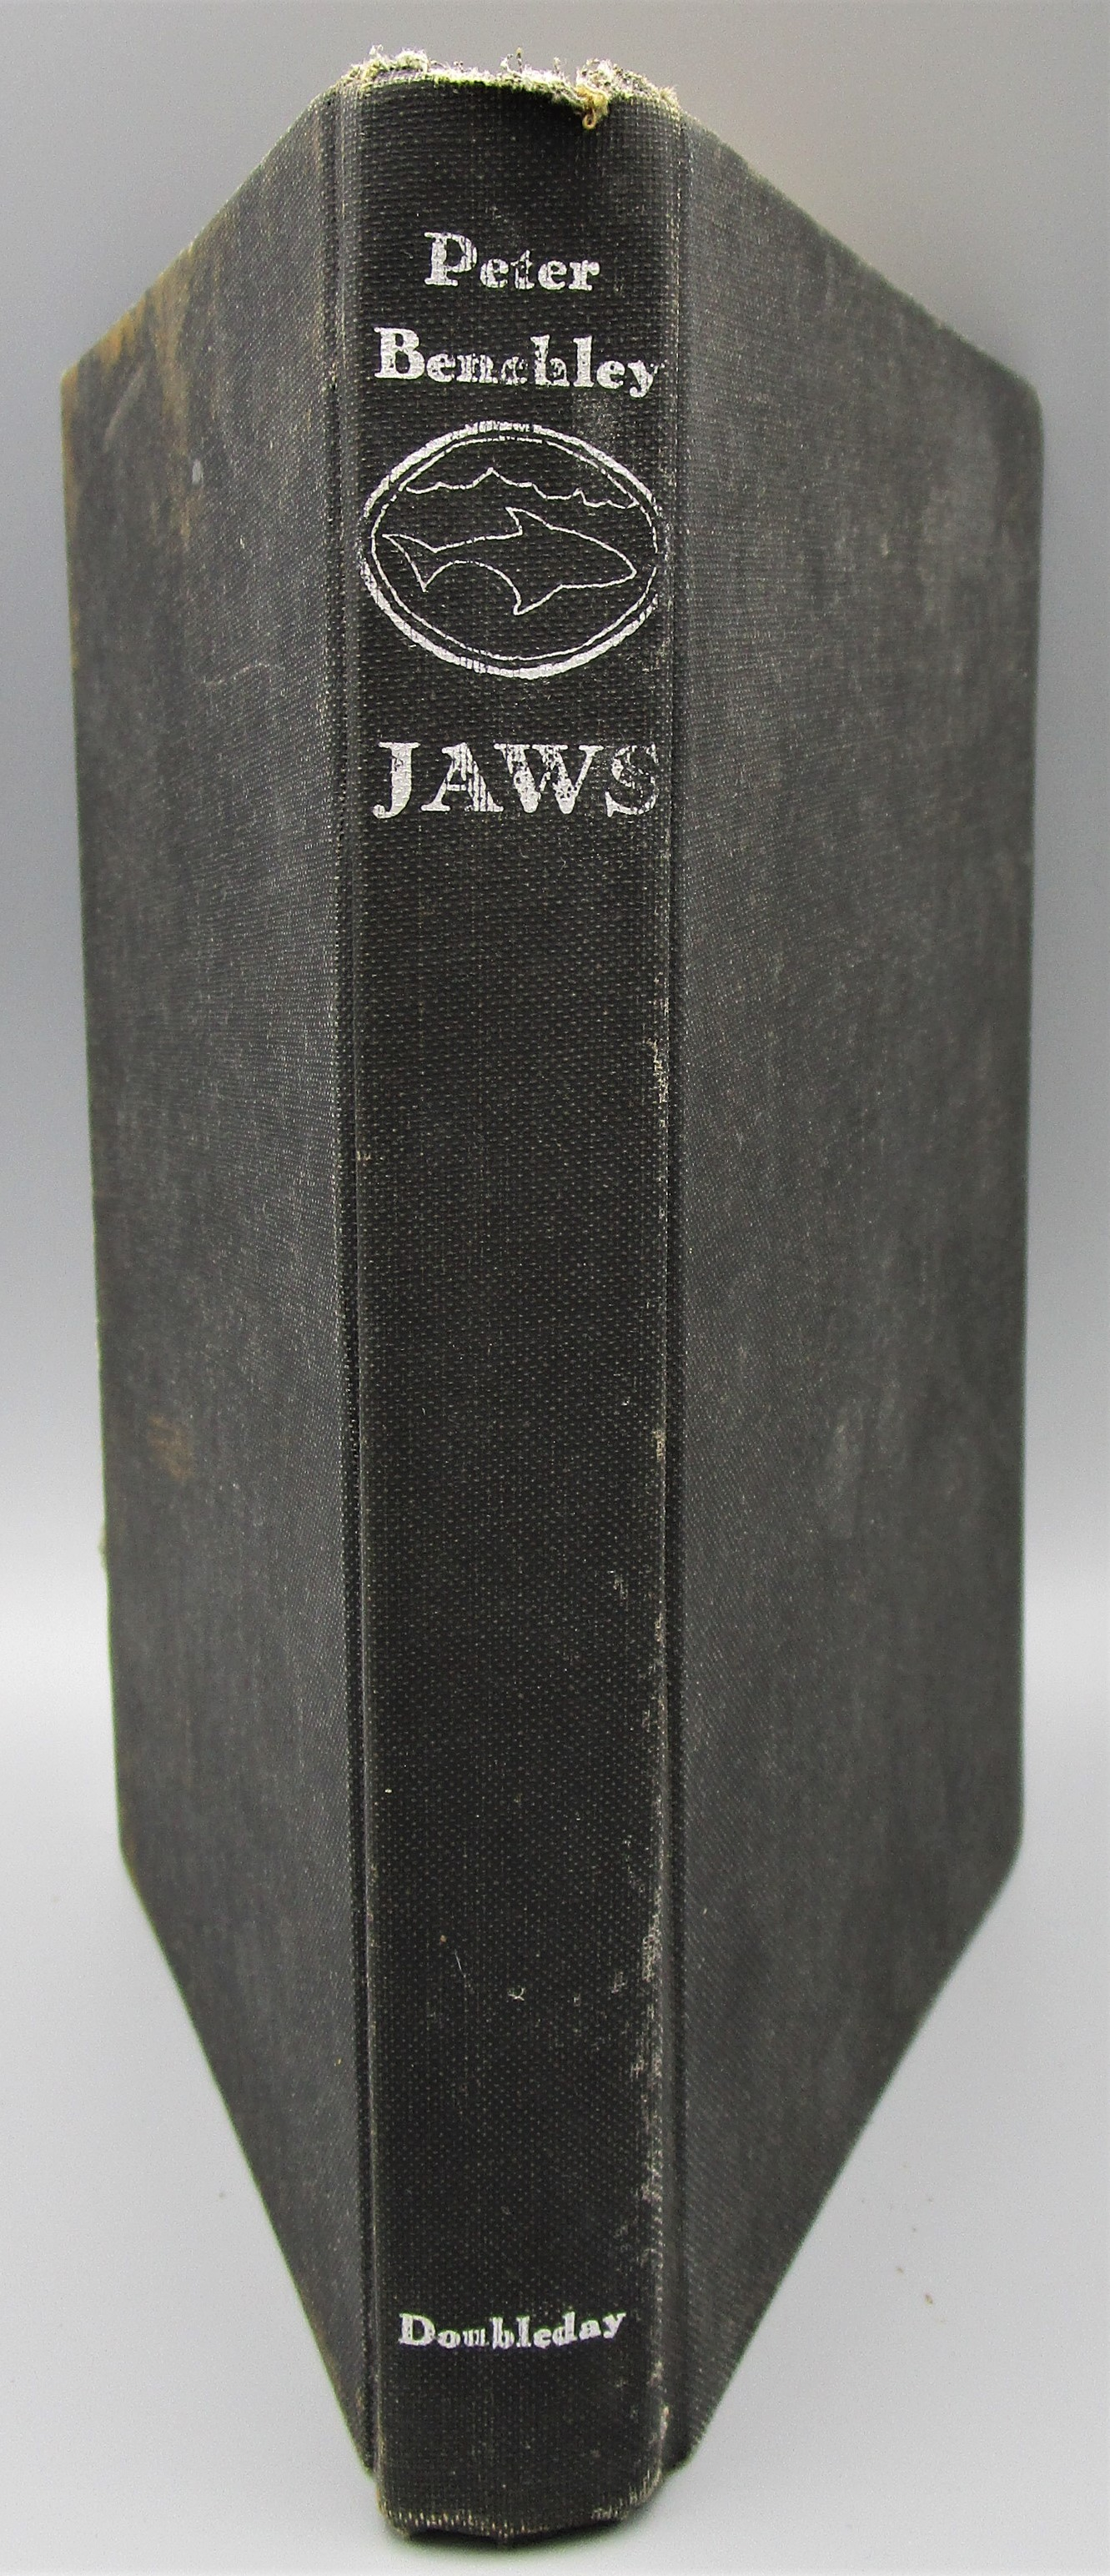 JAWS, by Peter Benchley - 1974 [1st Ed, Signed w/drawing]